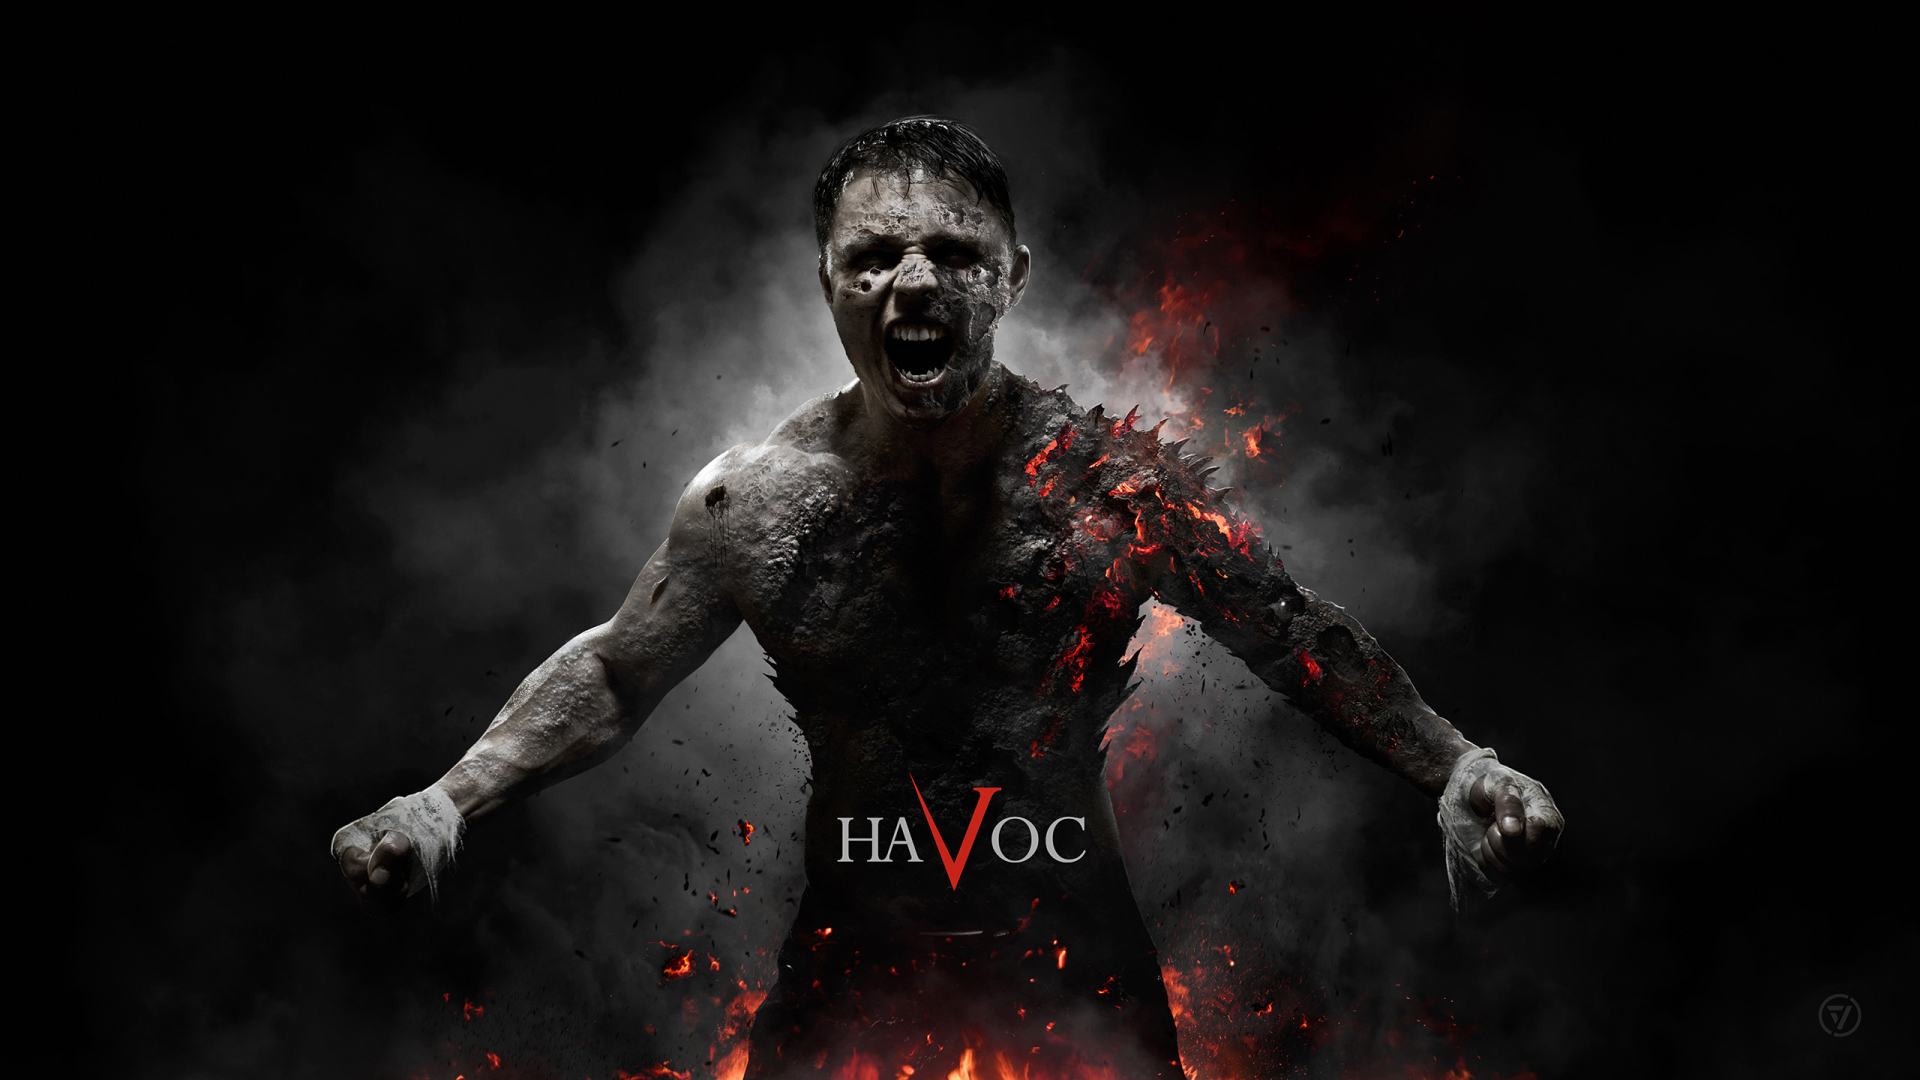 Havoc for 1920 x 1080 HDTV 1080p resolution